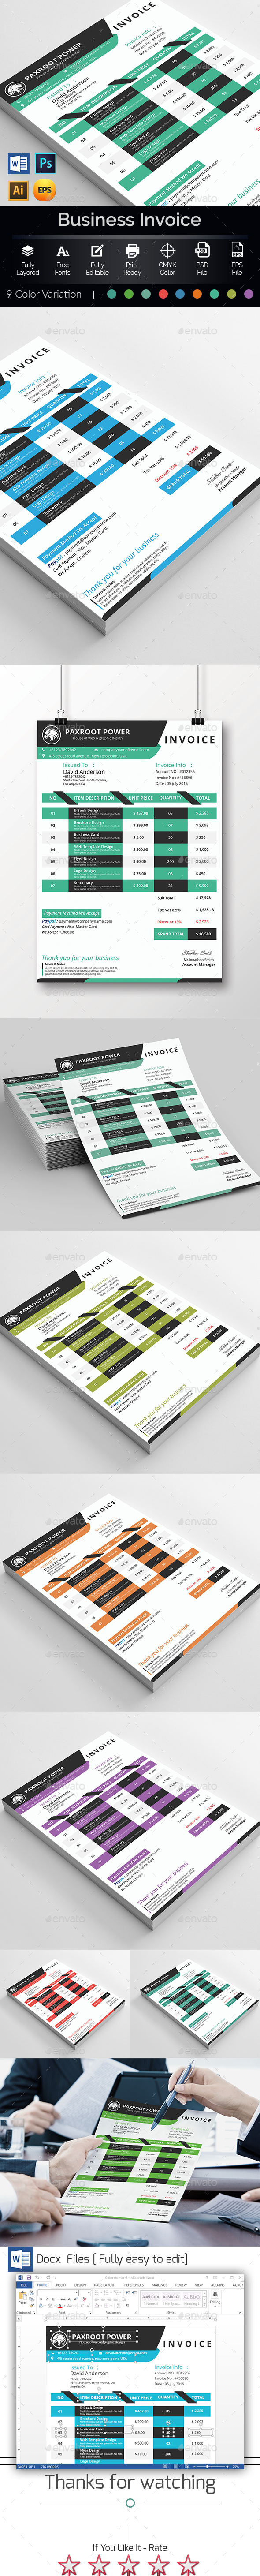 MS Word Invoice Template - Proposals & Invoices Stationery